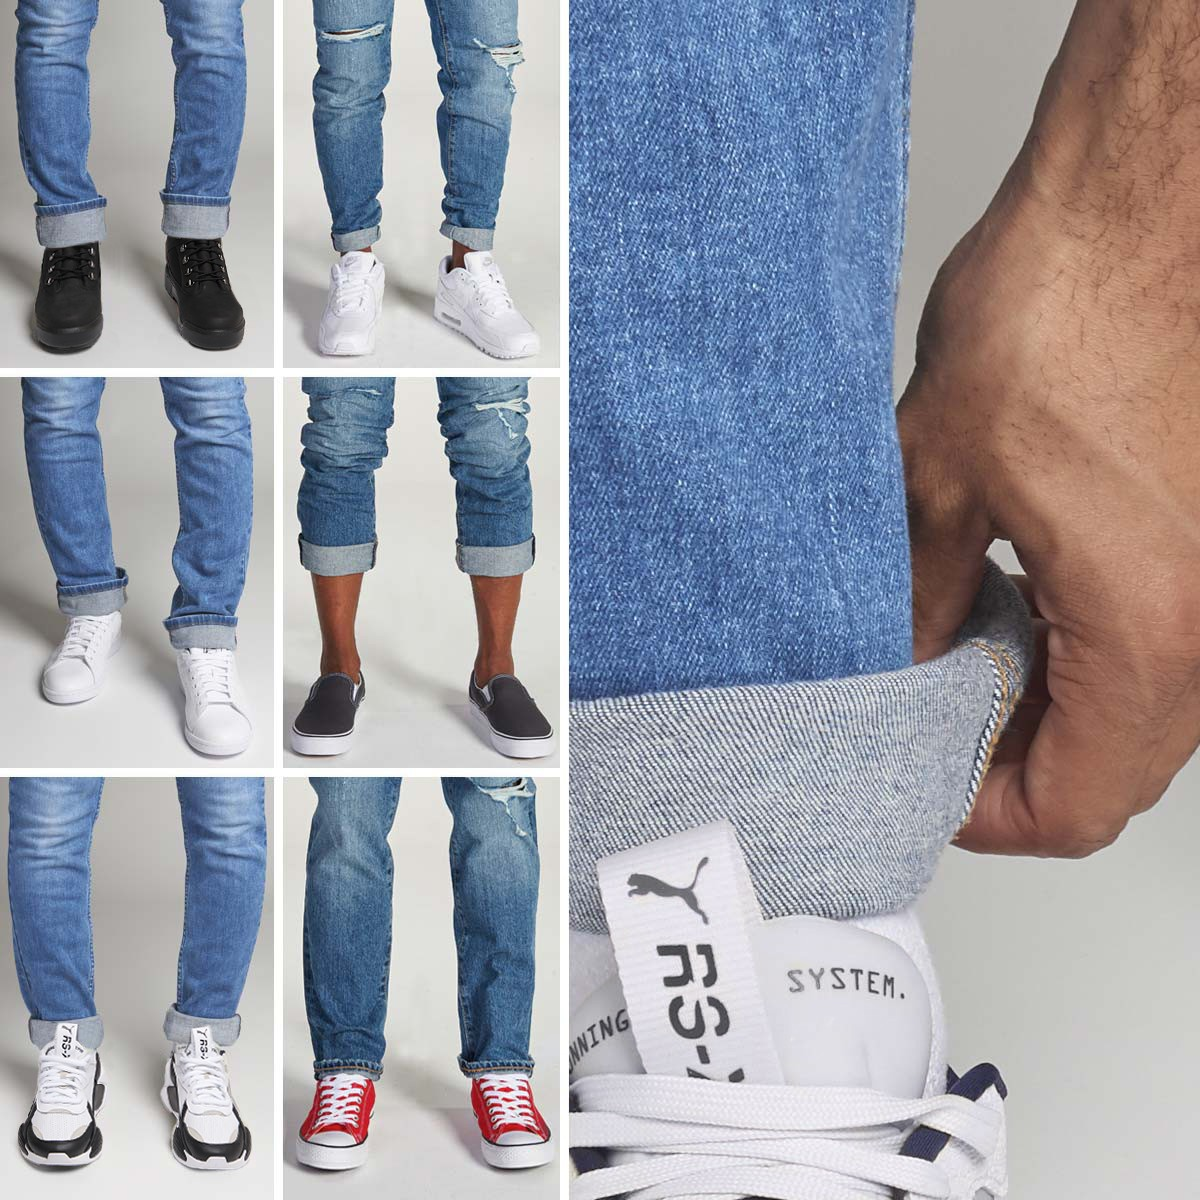 Cuff Your Jeans Mobile Spotlight